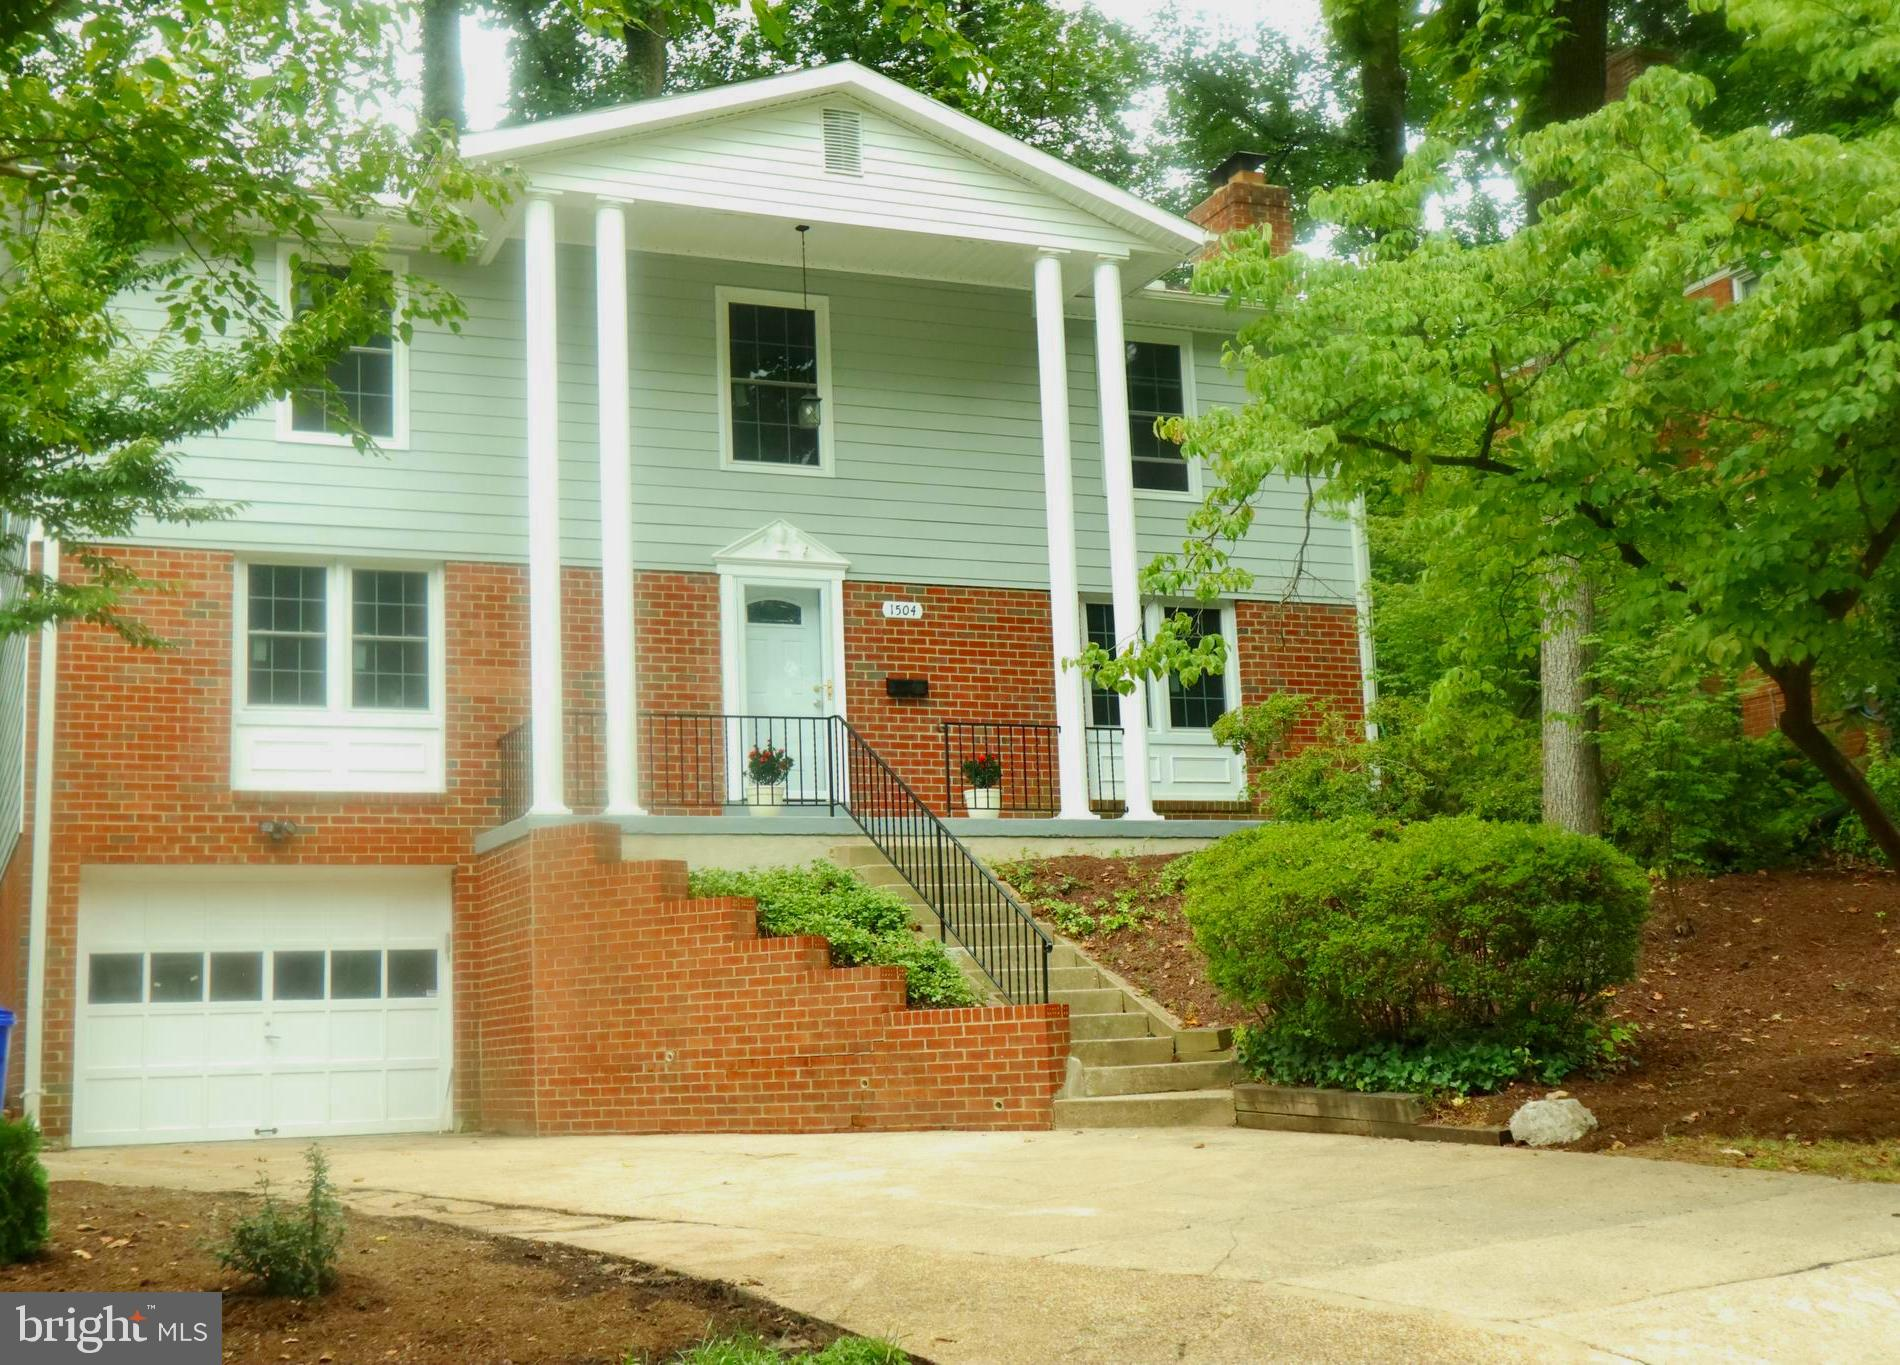 1504 RED OAK DRIVE, SILVER SPRING, MD 20910